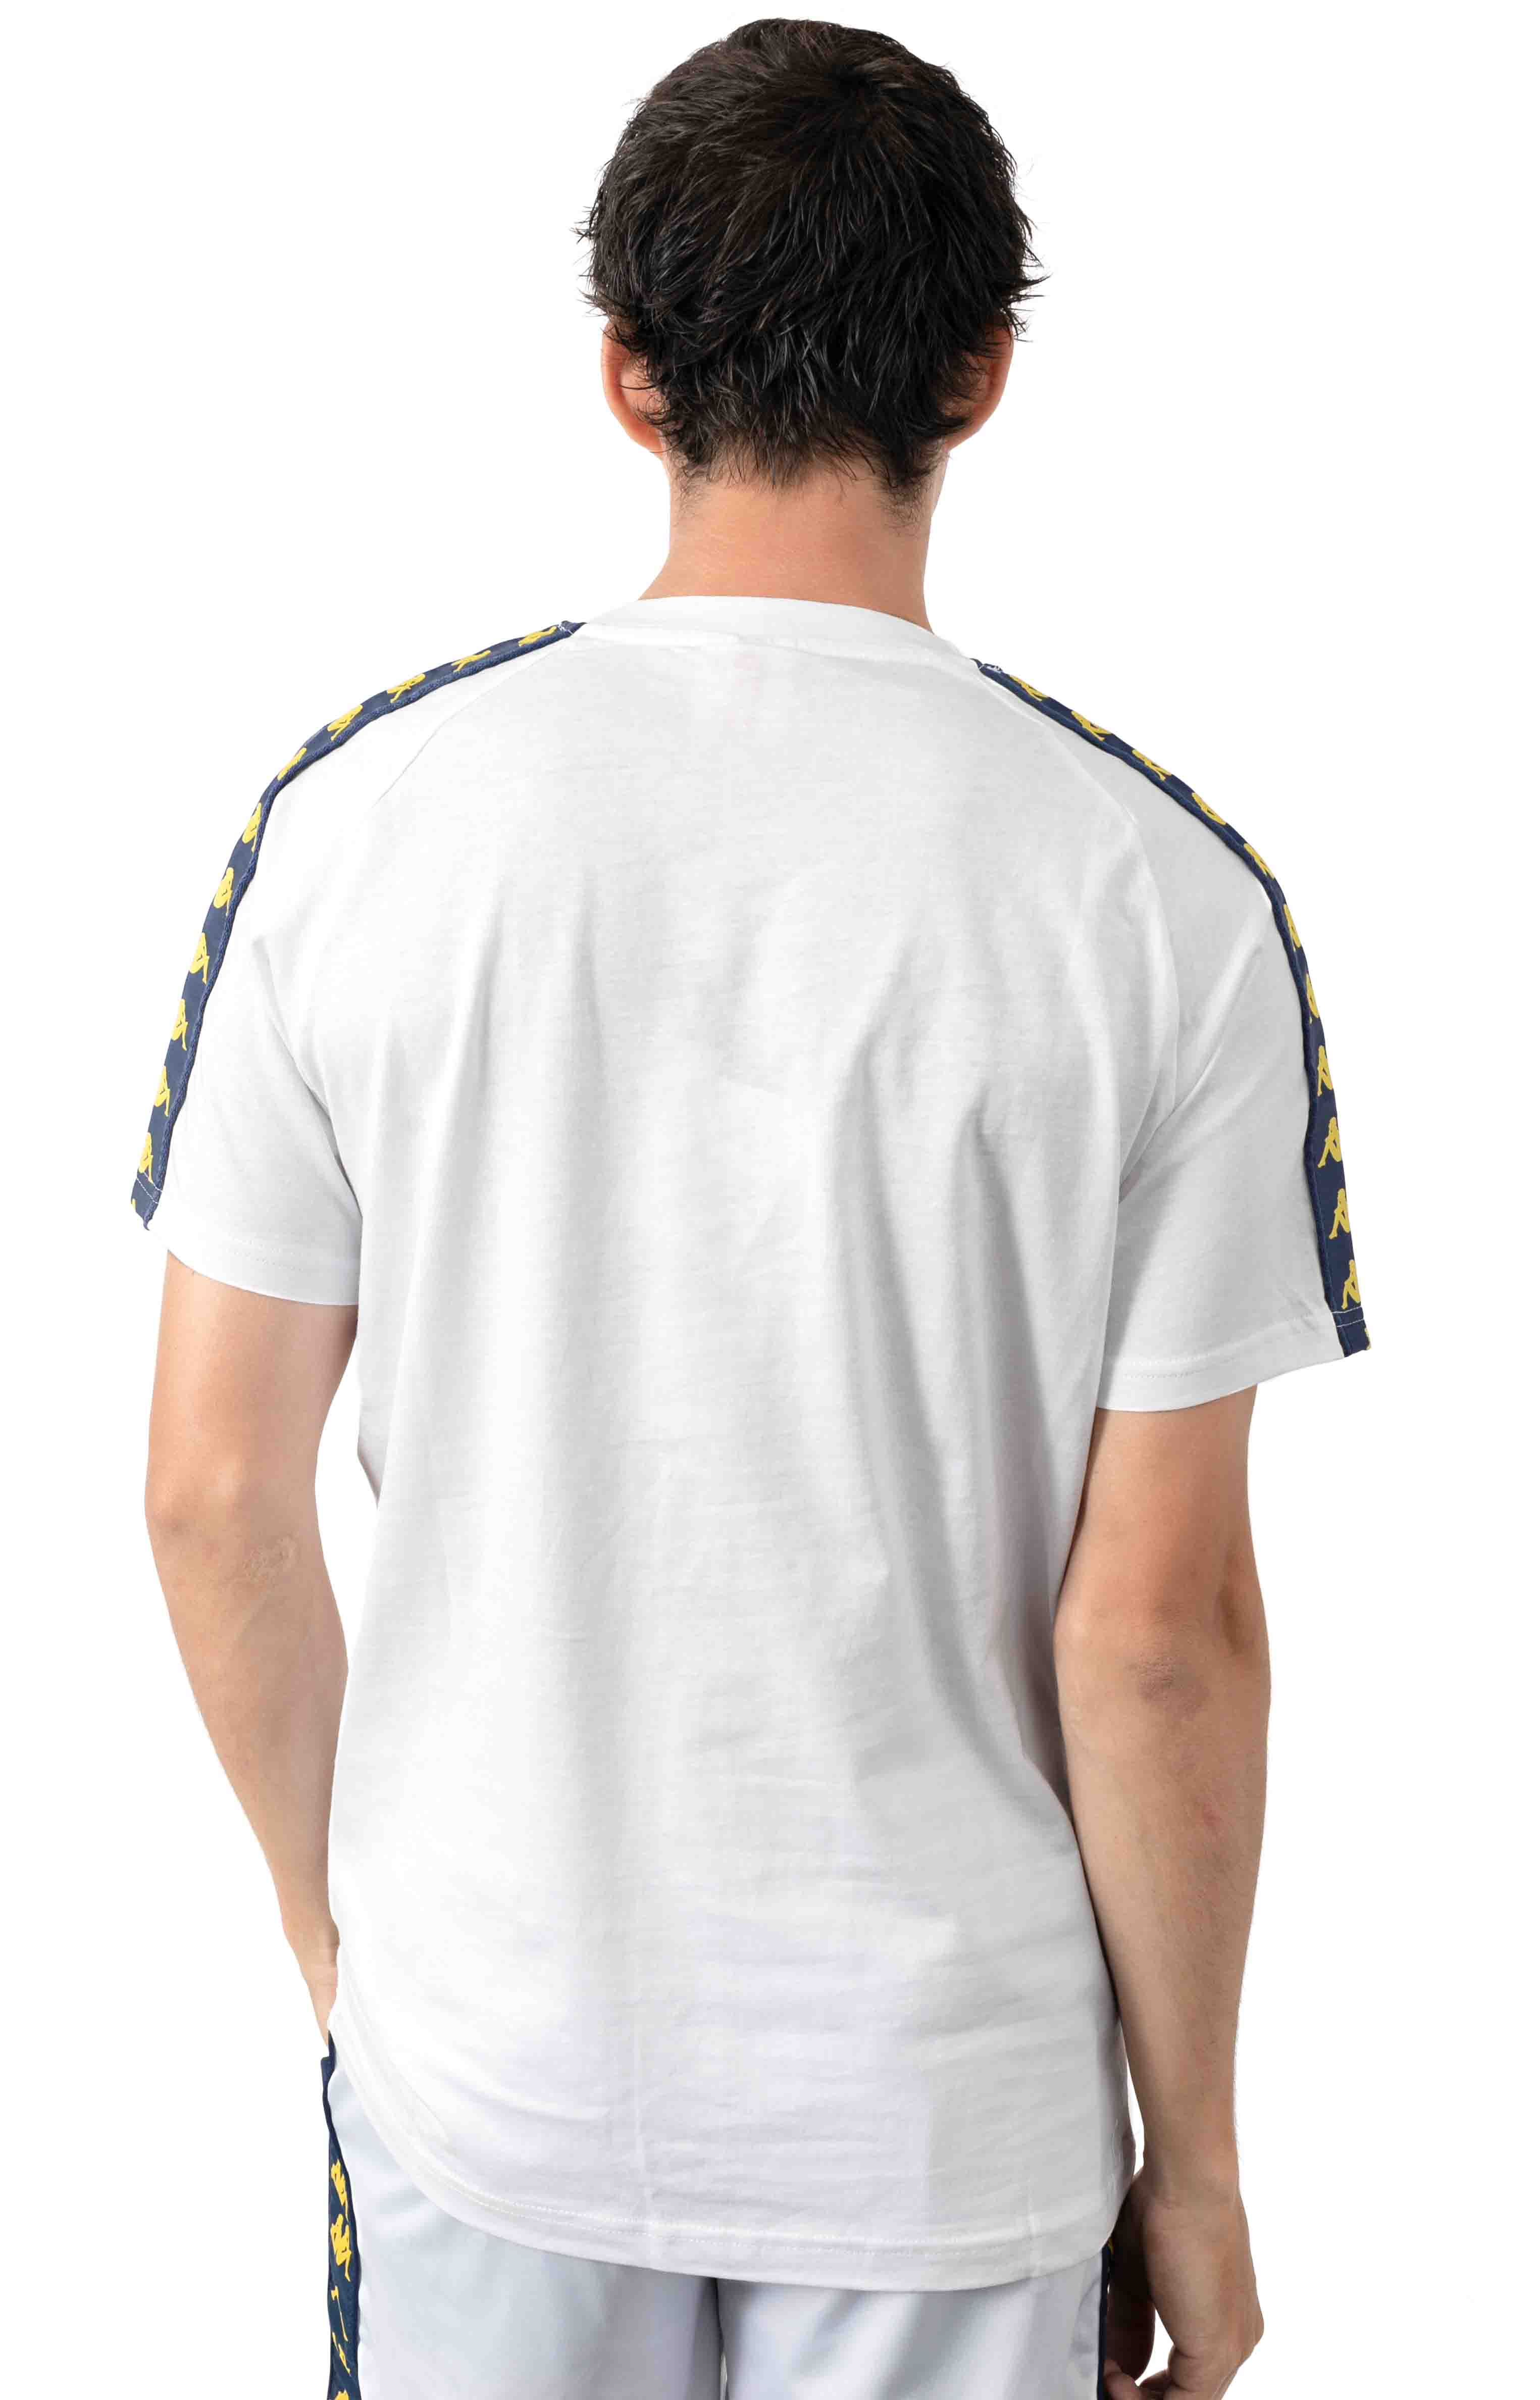 222 Banda Balima T-Shirt - White/Blue Mid/Yellow 3